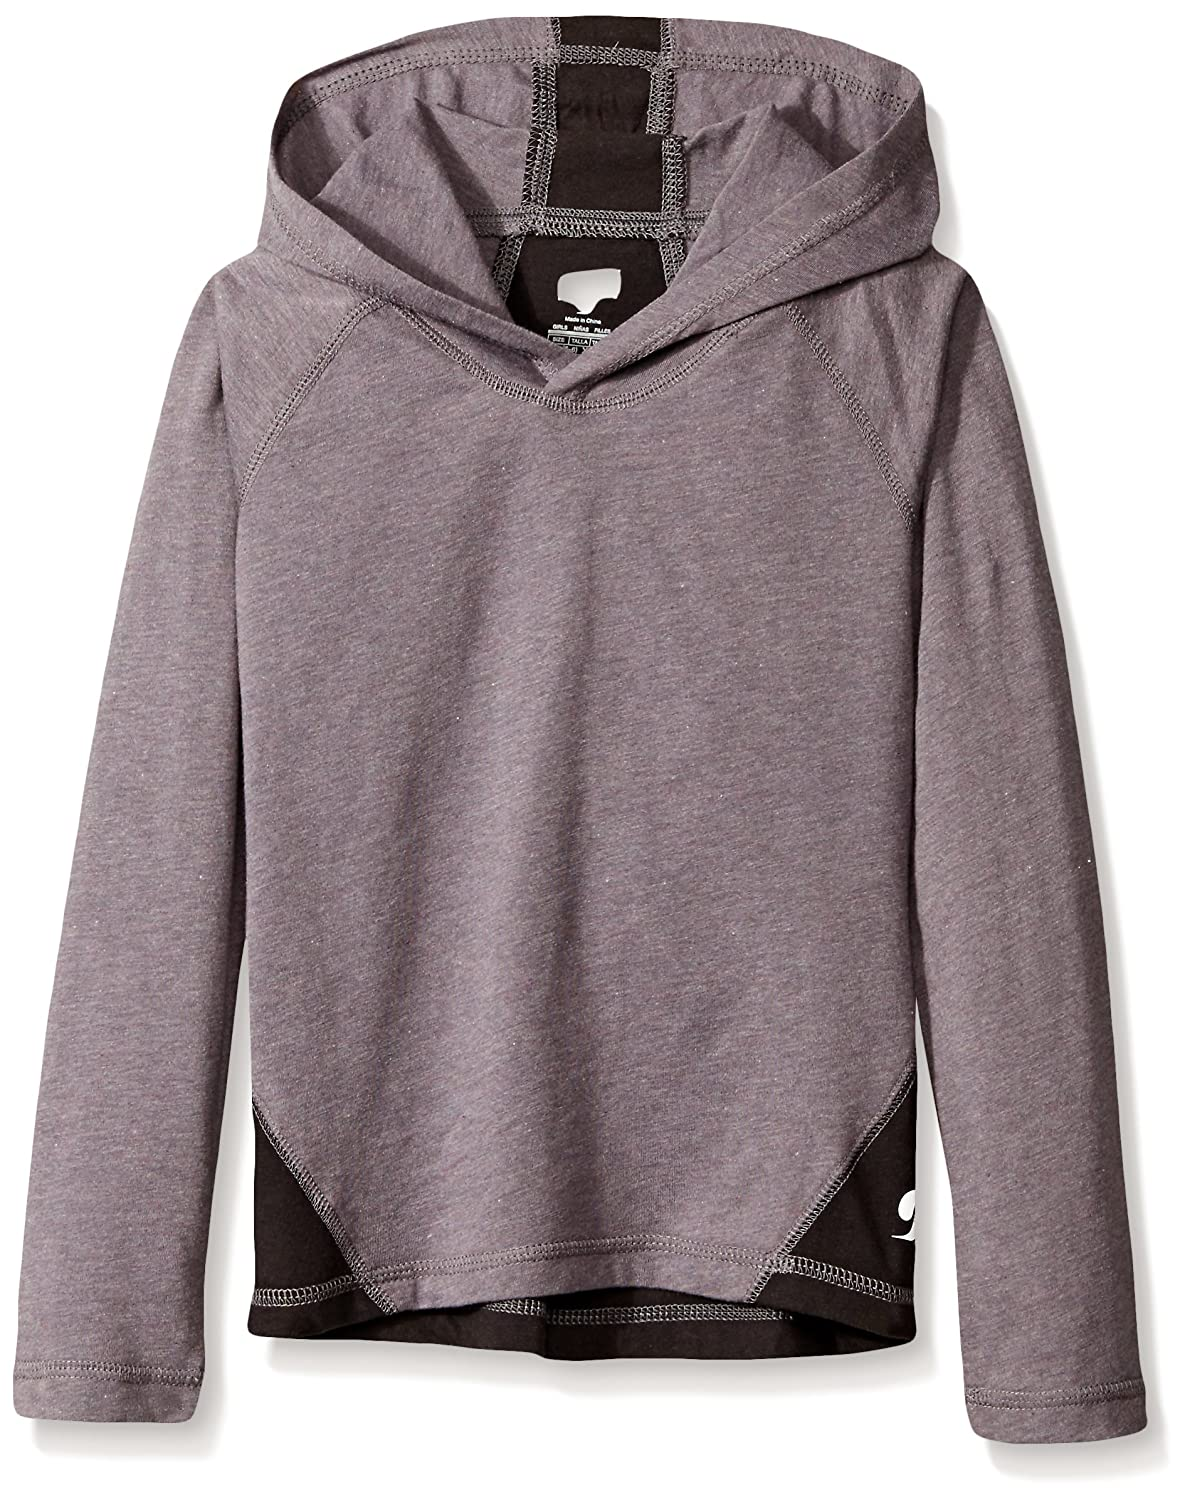 Soffe Girls' Big Colorblock Hoody Soffe Children's Apparel 6519G